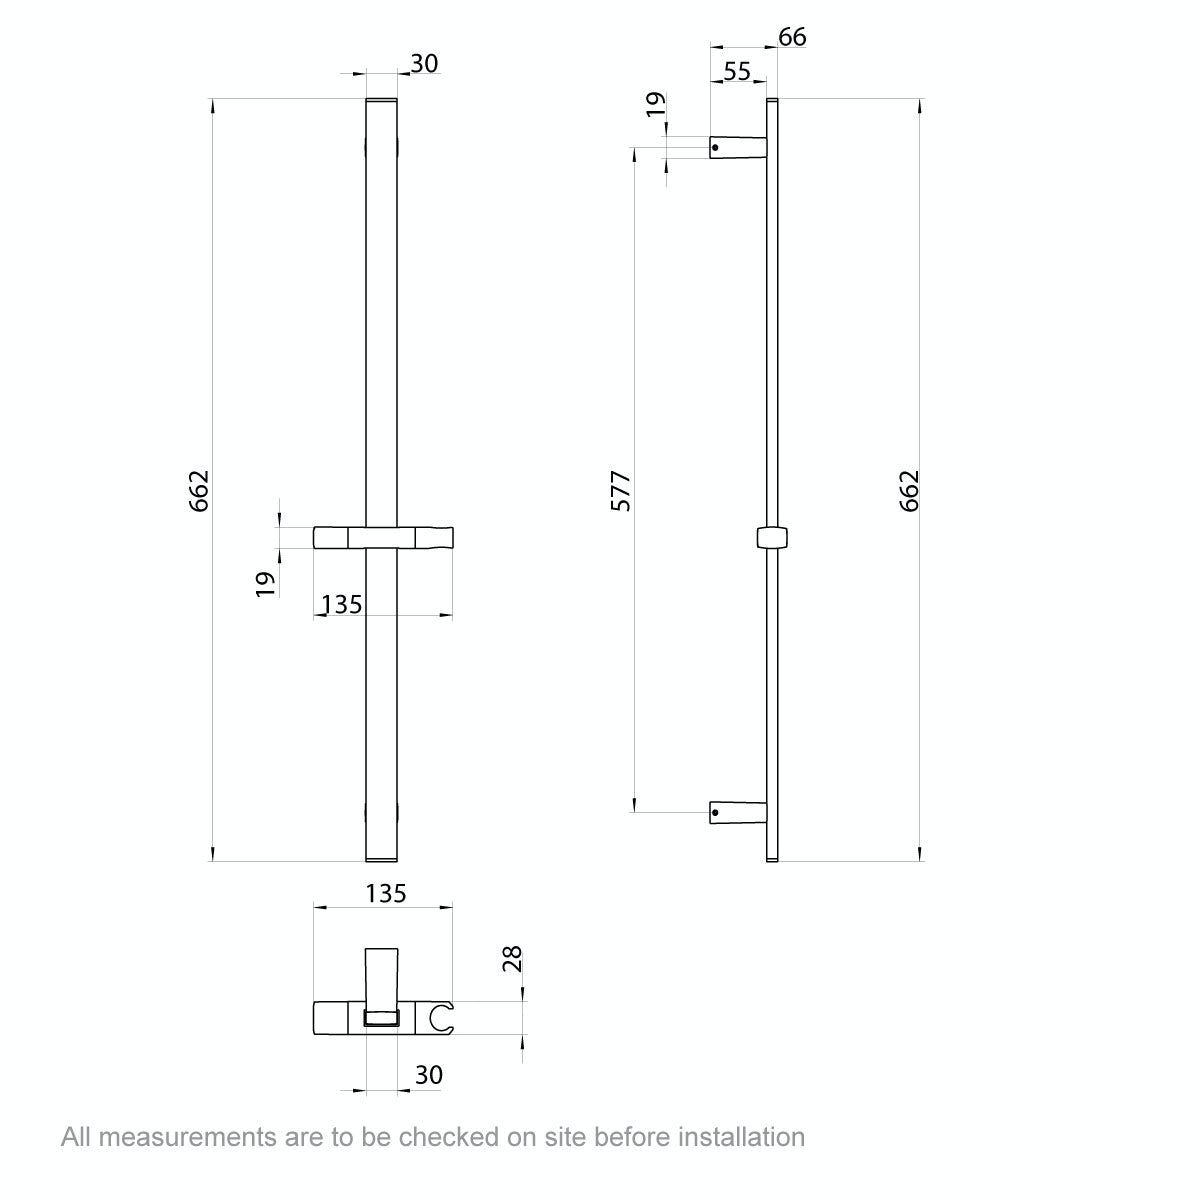 Dimensions for Flex Slider Rail Kit